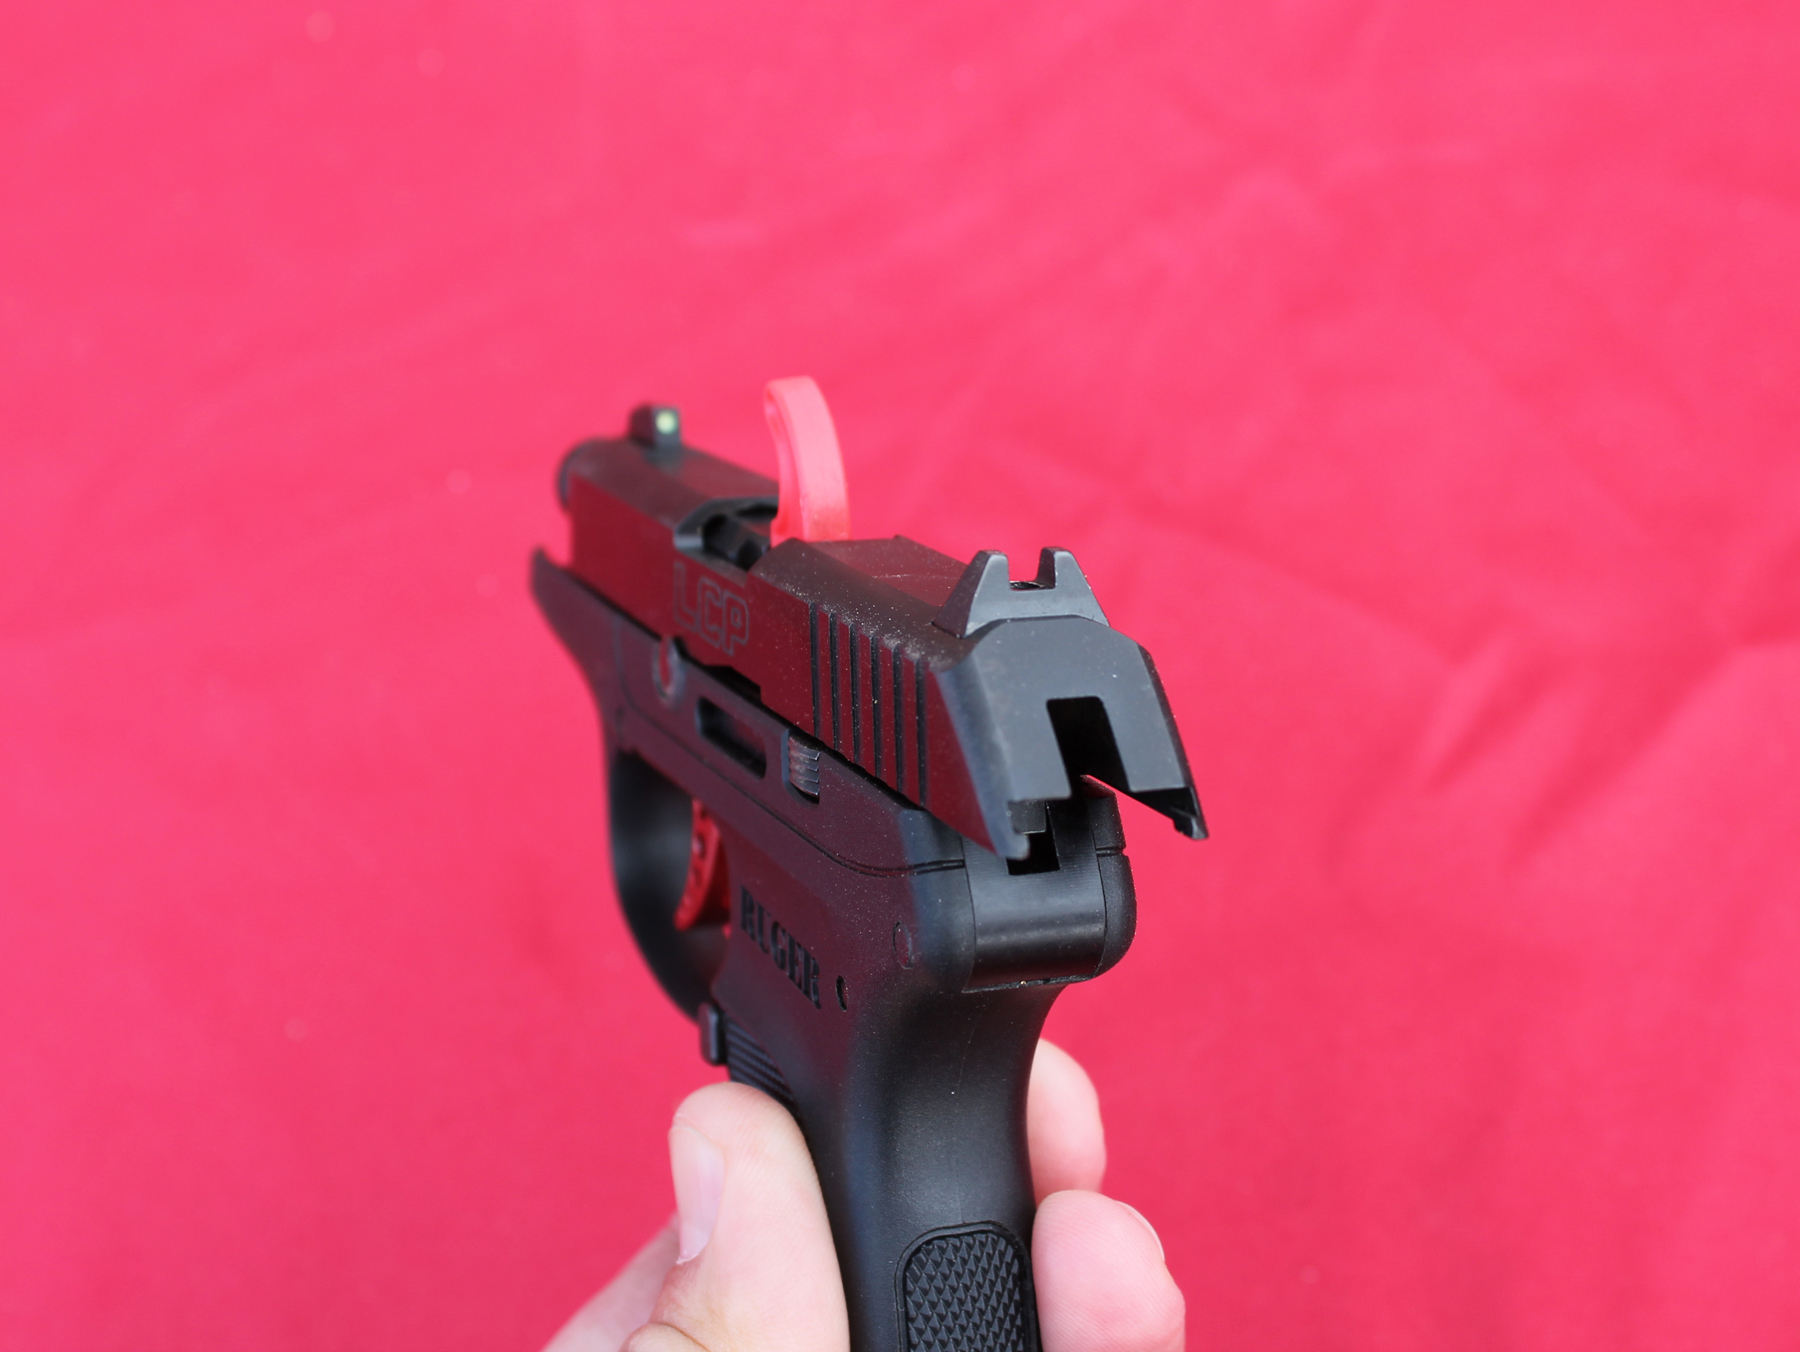 Ruger LCP rear sight